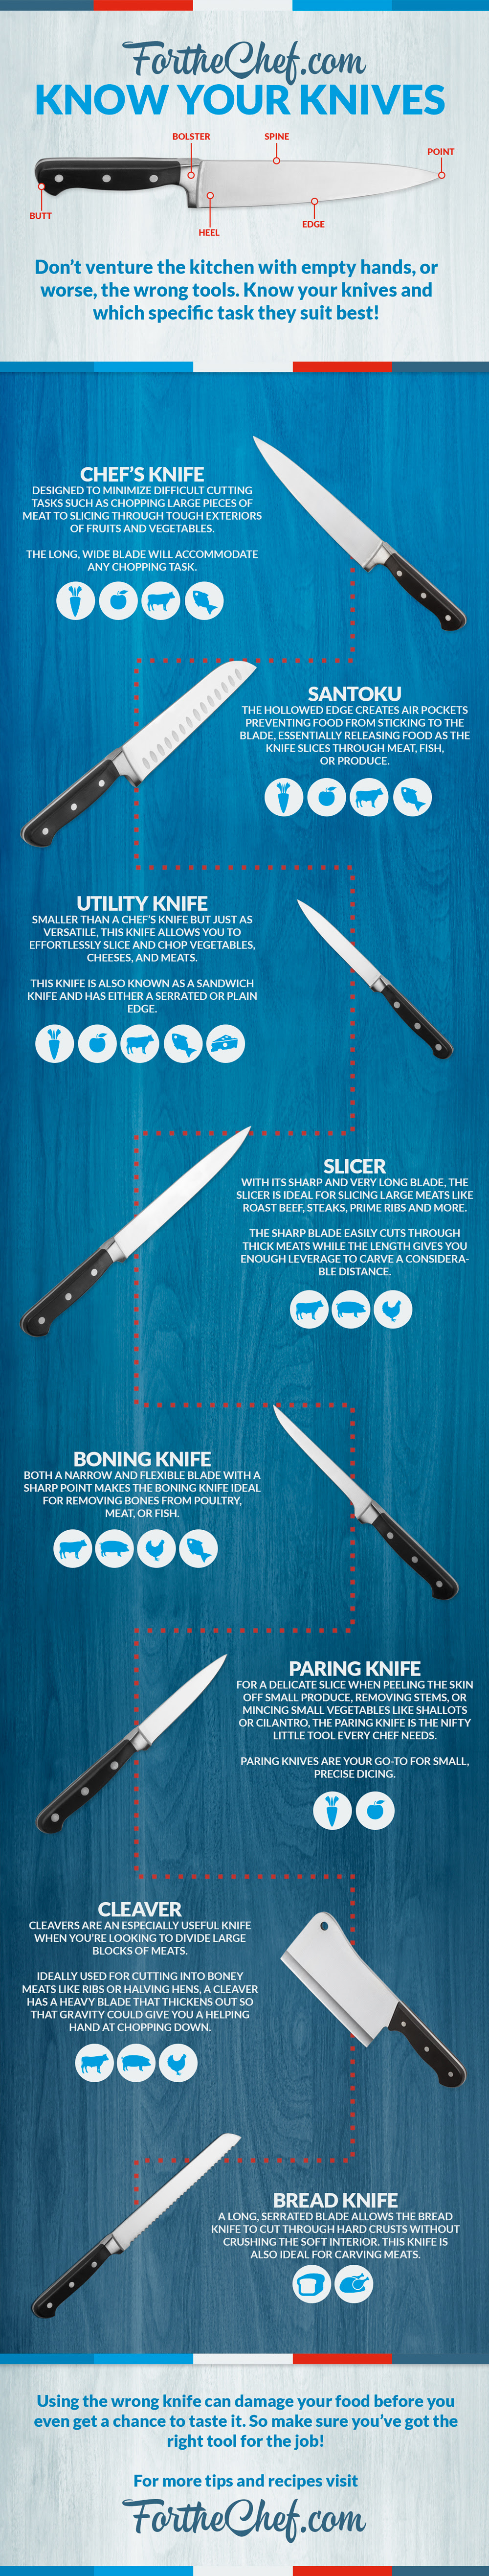 Know Your Knives – A Guide to Kitchen Knives [OC]